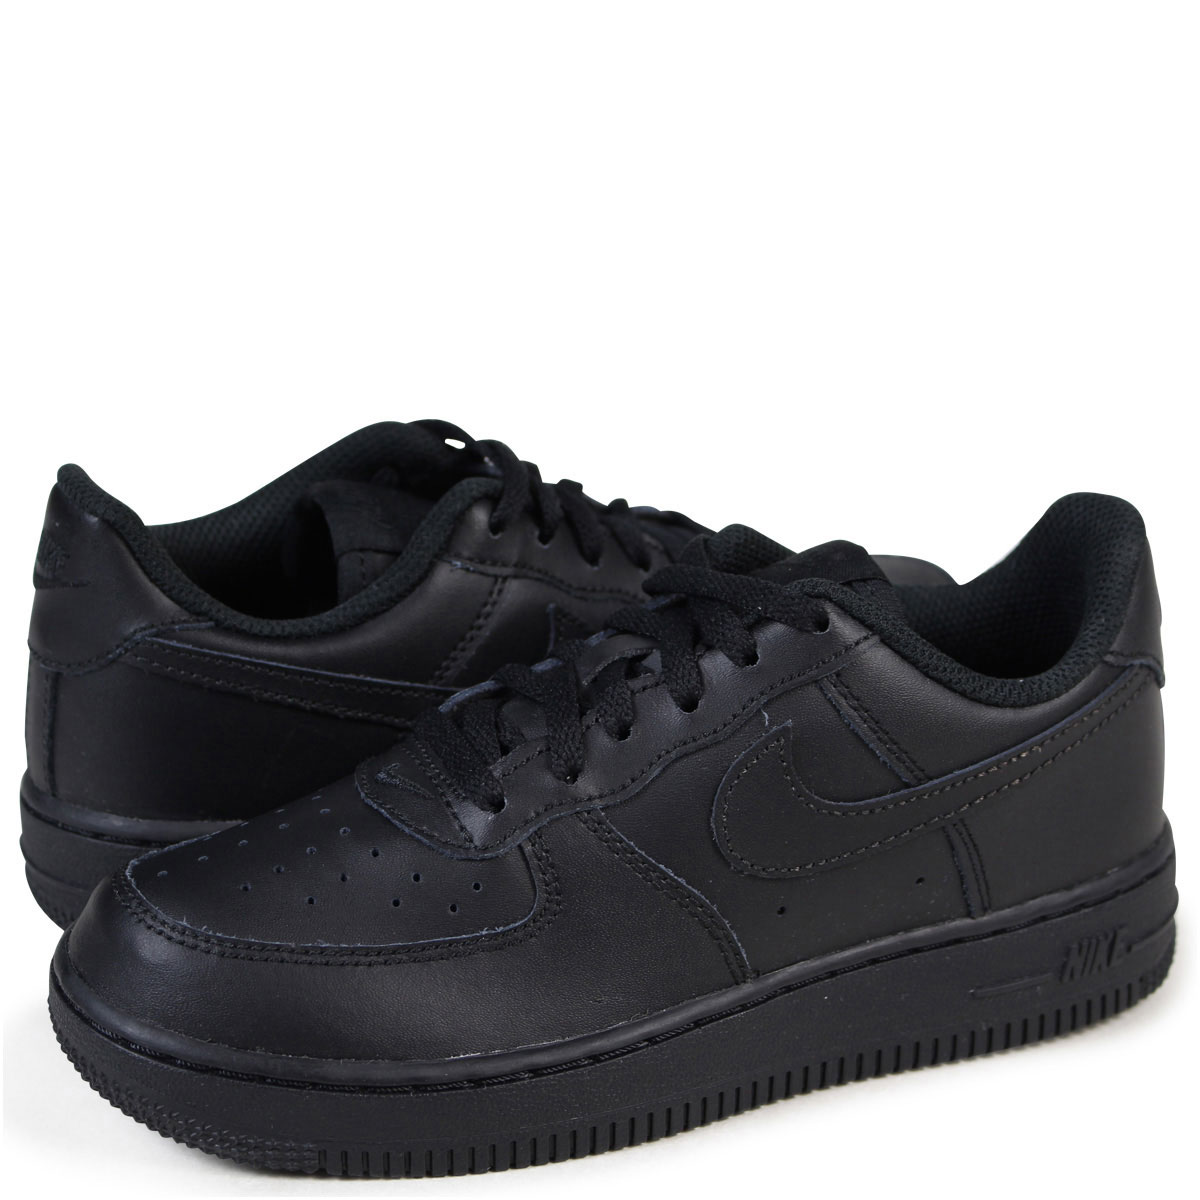 low priced dd3e6 a250e Nike NIKE air force 1 kids sneakers AIR FORCE 1 LOW PS low 314,193-009  black [192]